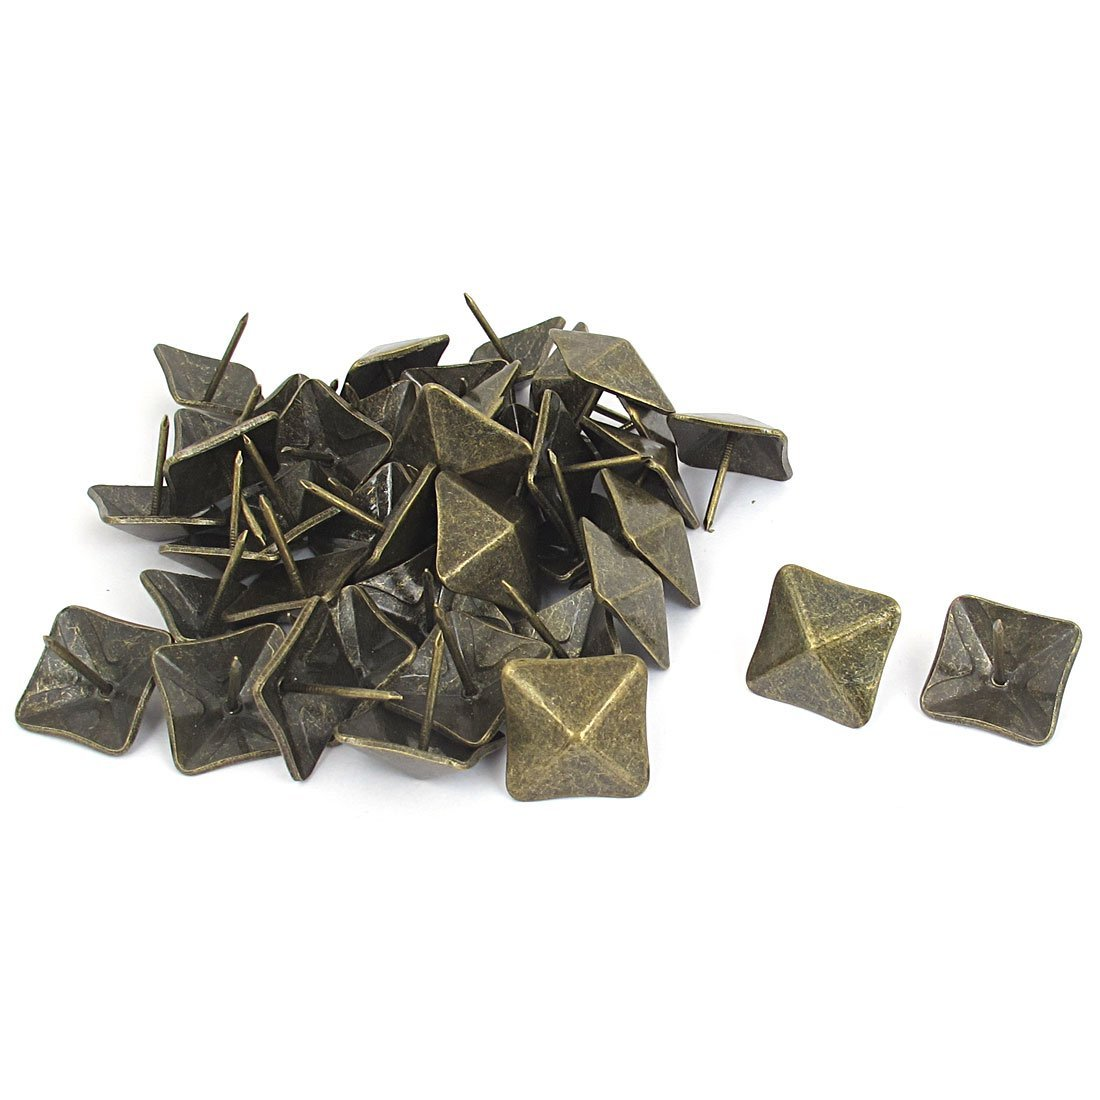 uxcell Antique Style Square Shaped Map Pins Thumb Tacks 19mm Dia 40 Pcs